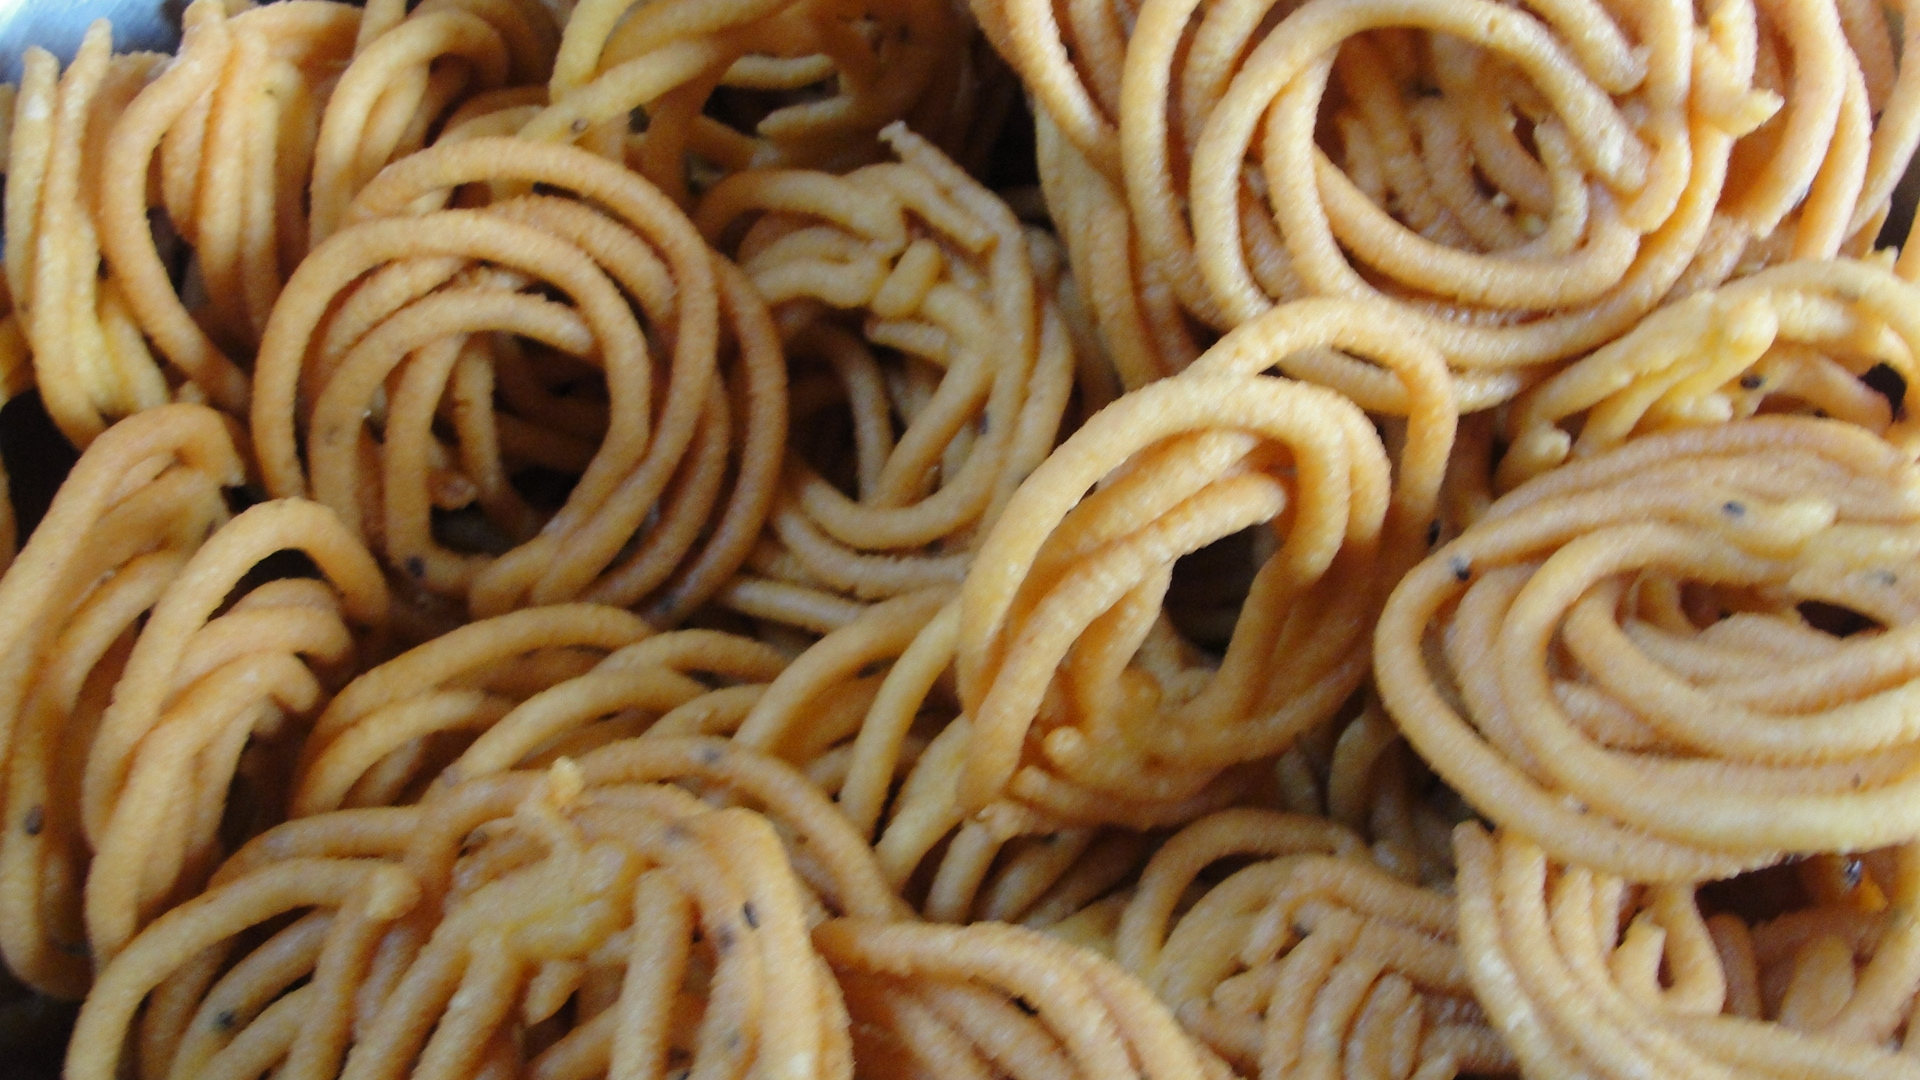 File:A Traditional Tamil Snack Murukku.jpg - Wikimedia Commons